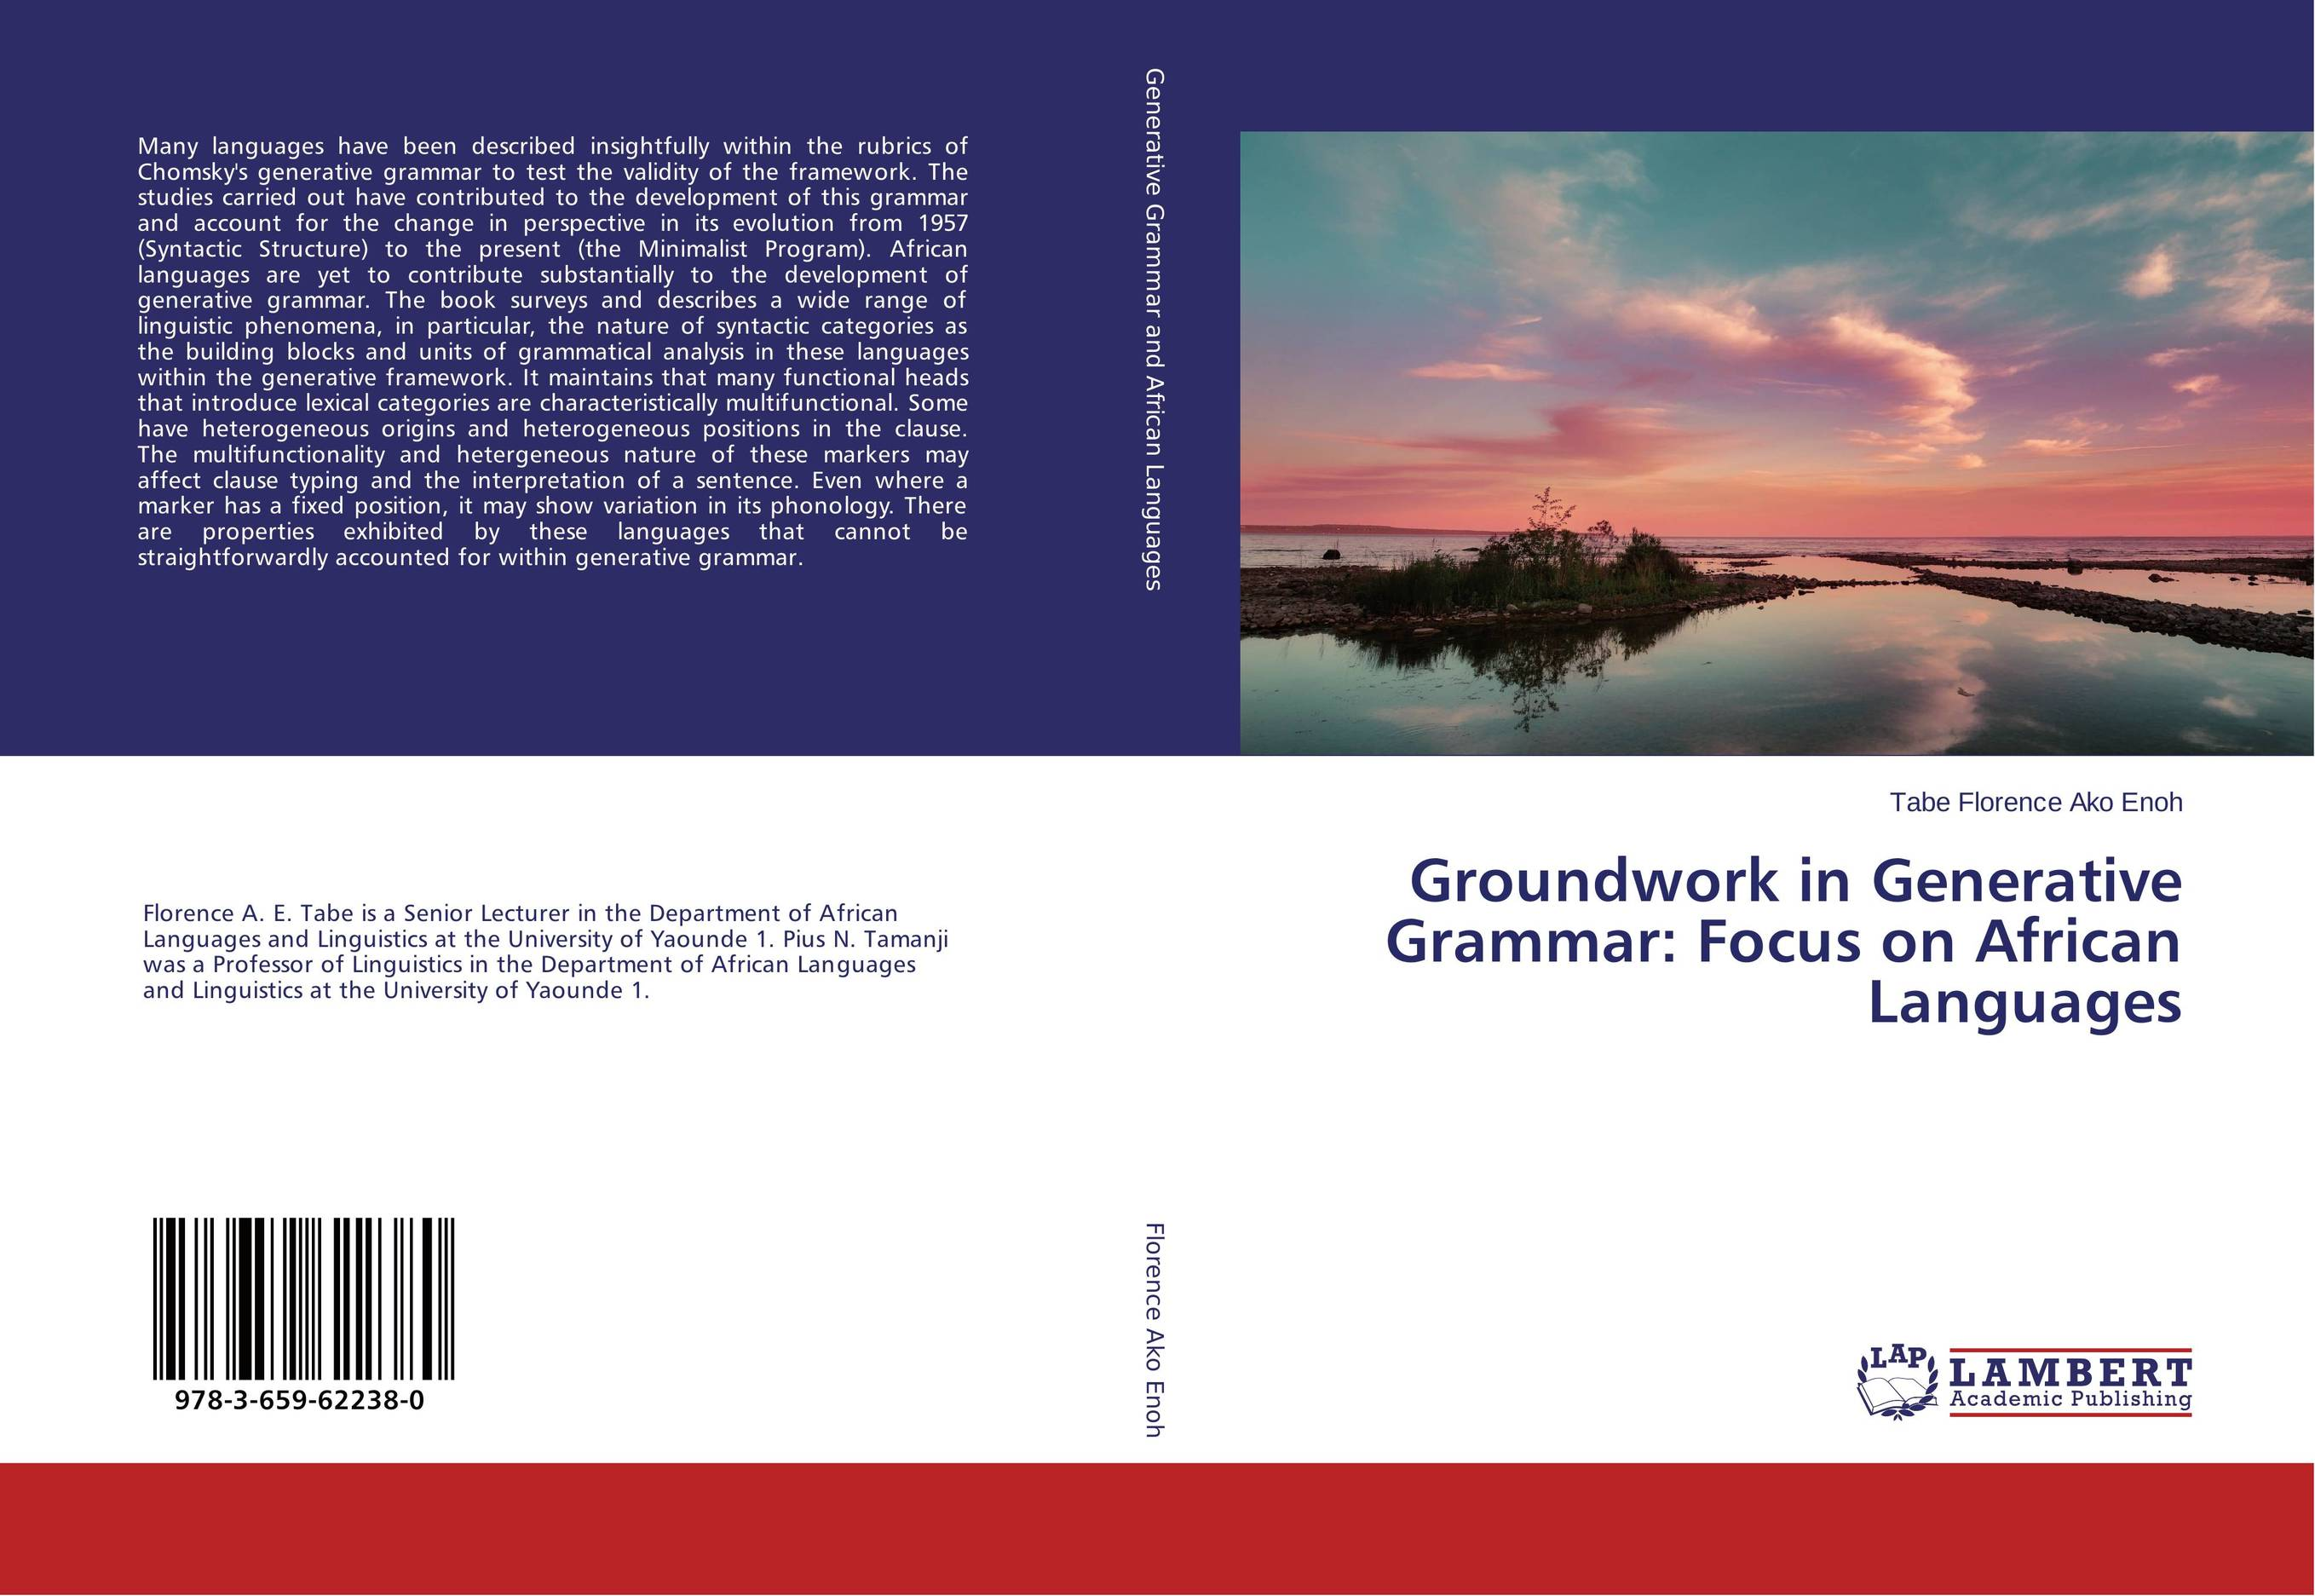 Groundwork in Generative Grammar: Focus on African Languages